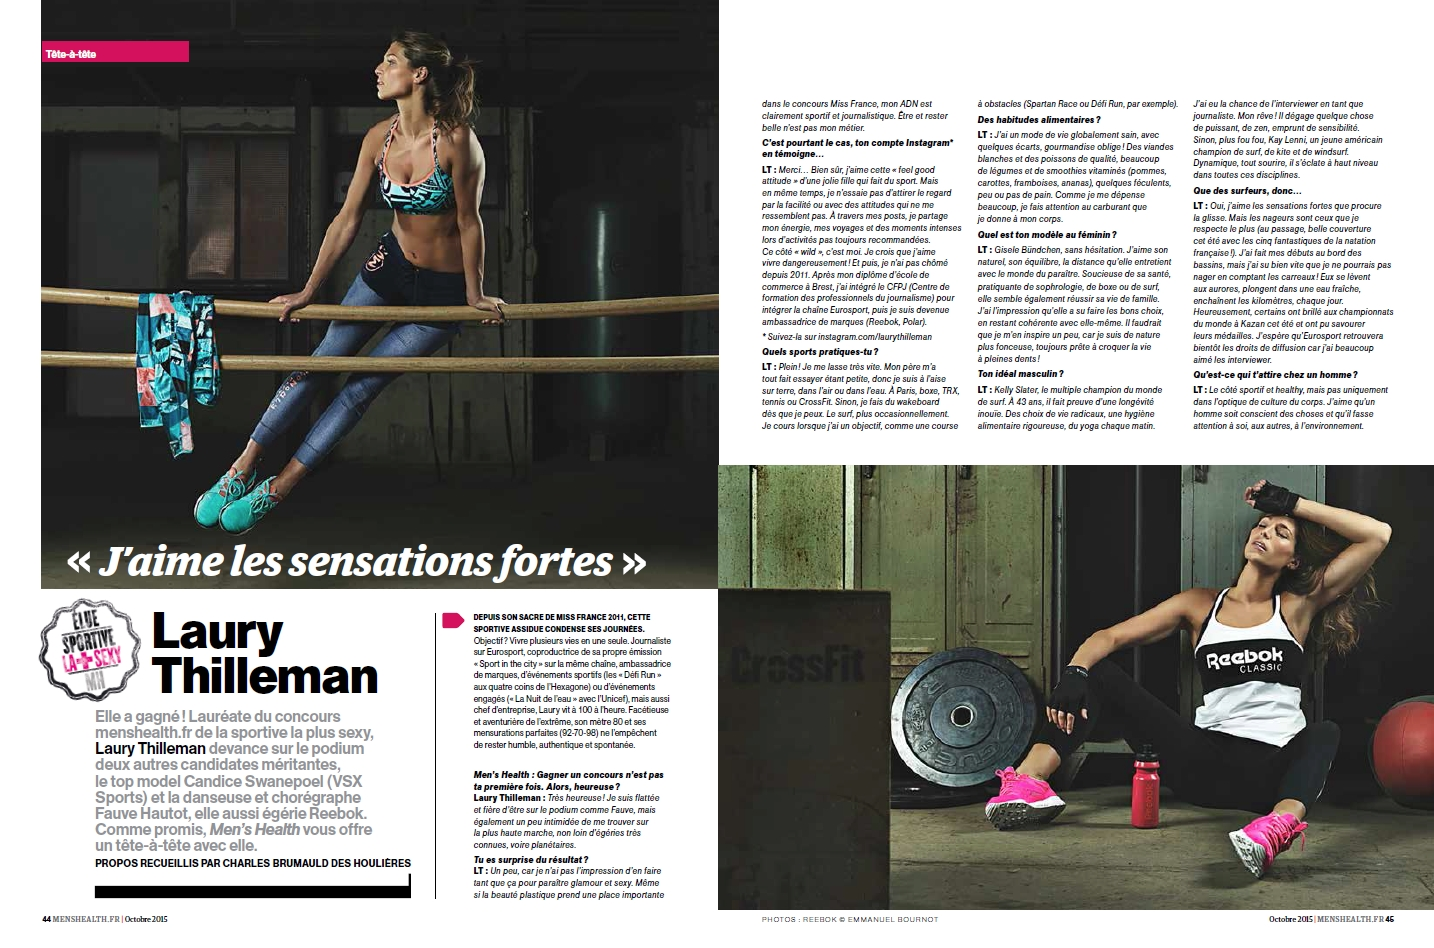 Laury-Thilleman-egerie-sportive-sexy-Mens-Health-75